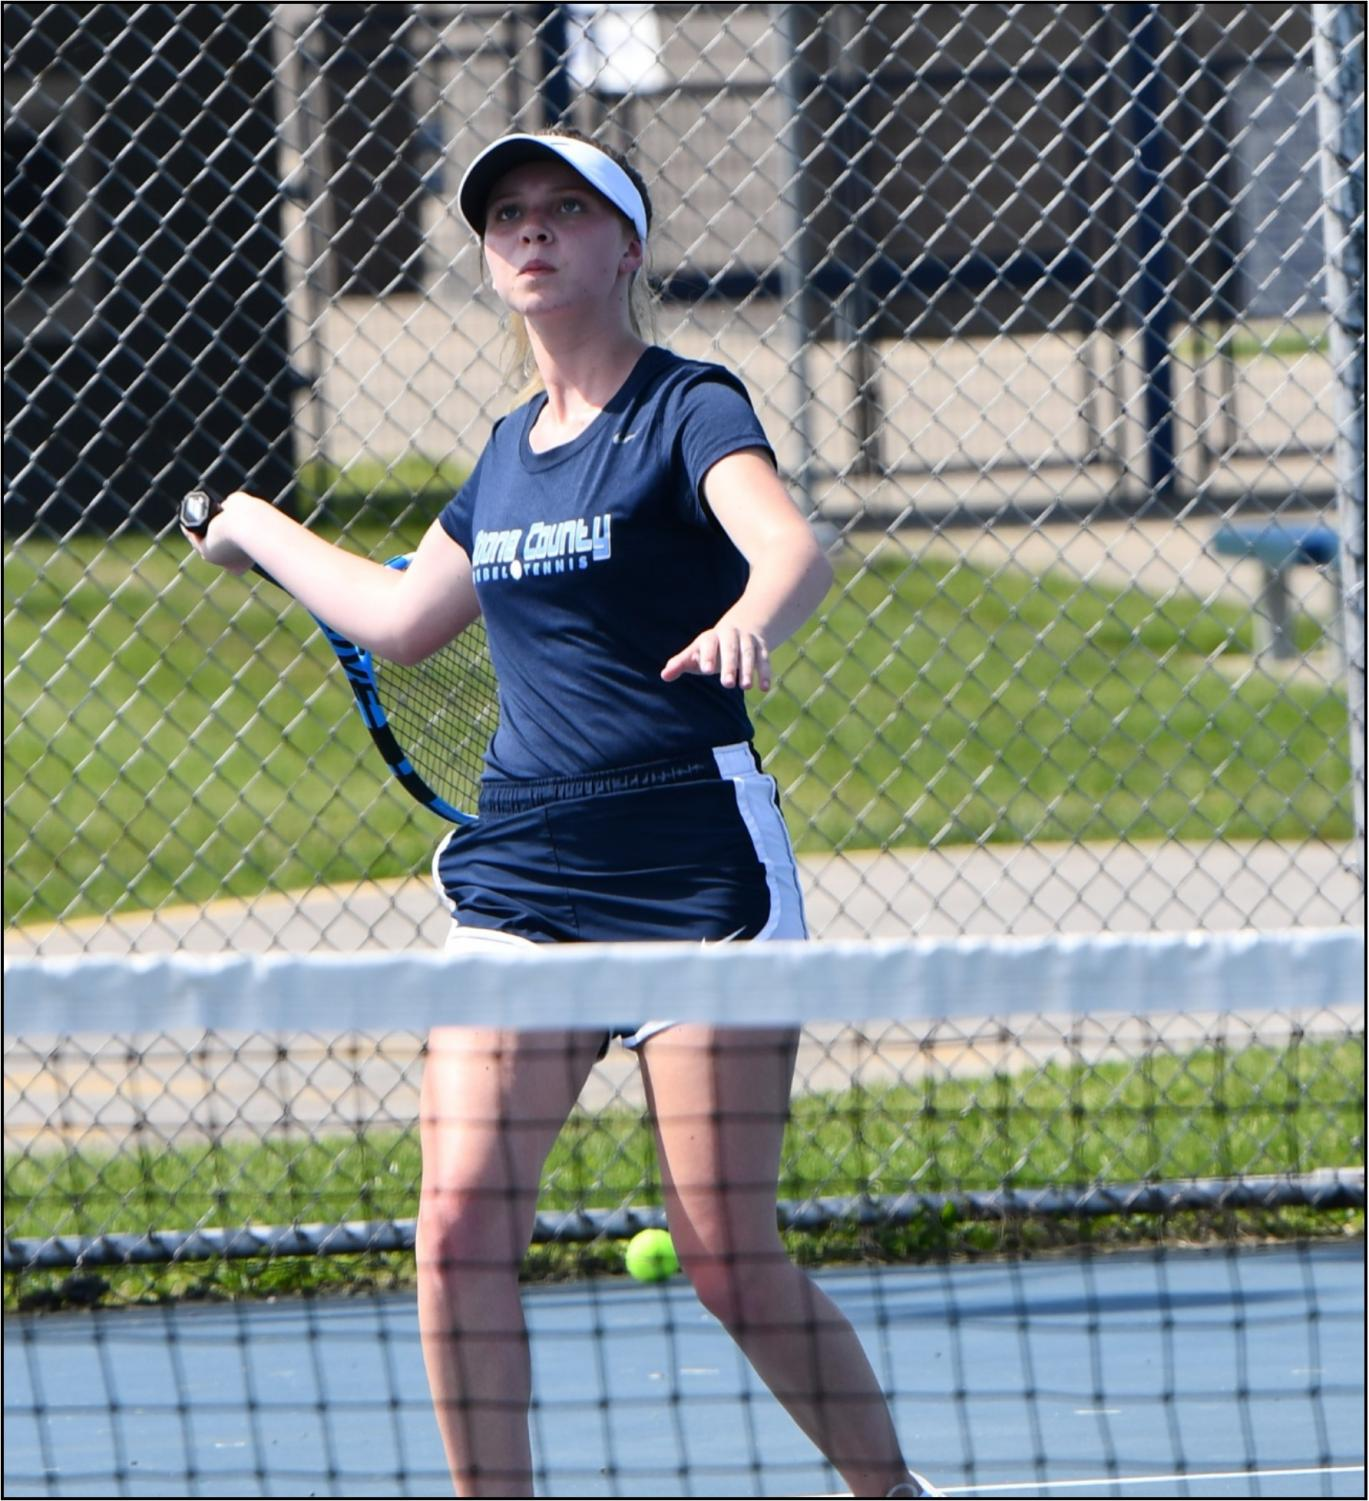 Freshman Alana Tinnell plays in a match at Scott High School on May 8. Tinnell won the match and has been leading her team as the No. 1 singles player.